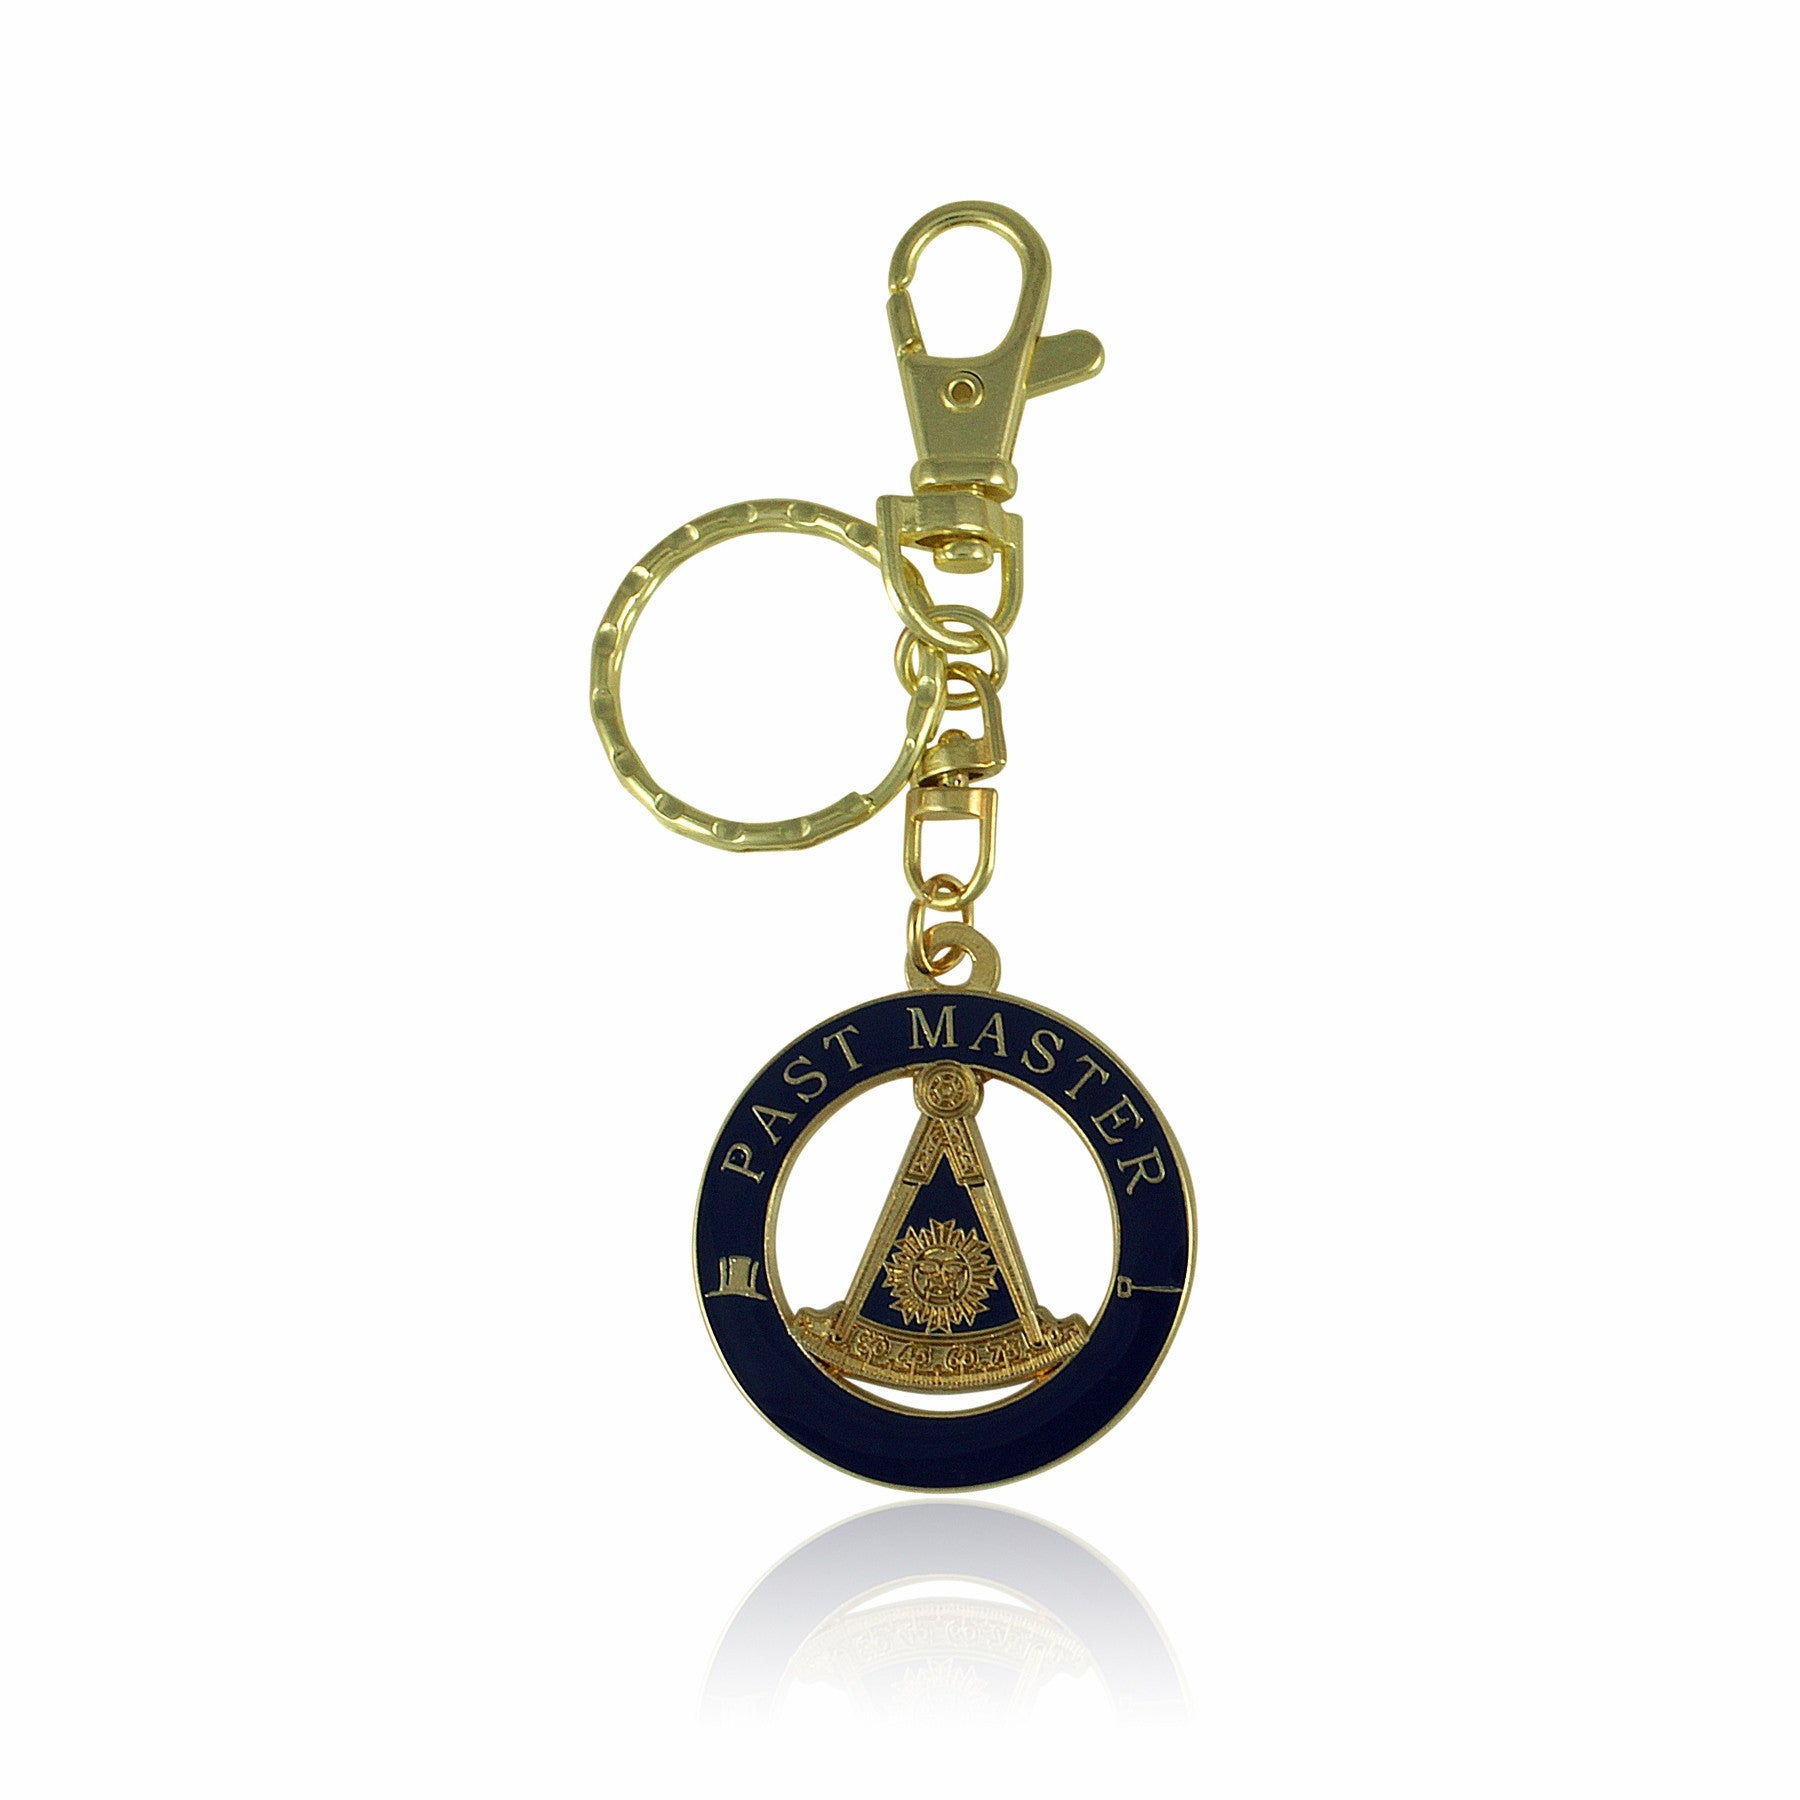 Past Master Masonic Key Chain with Hook by UniverSoul Gifts